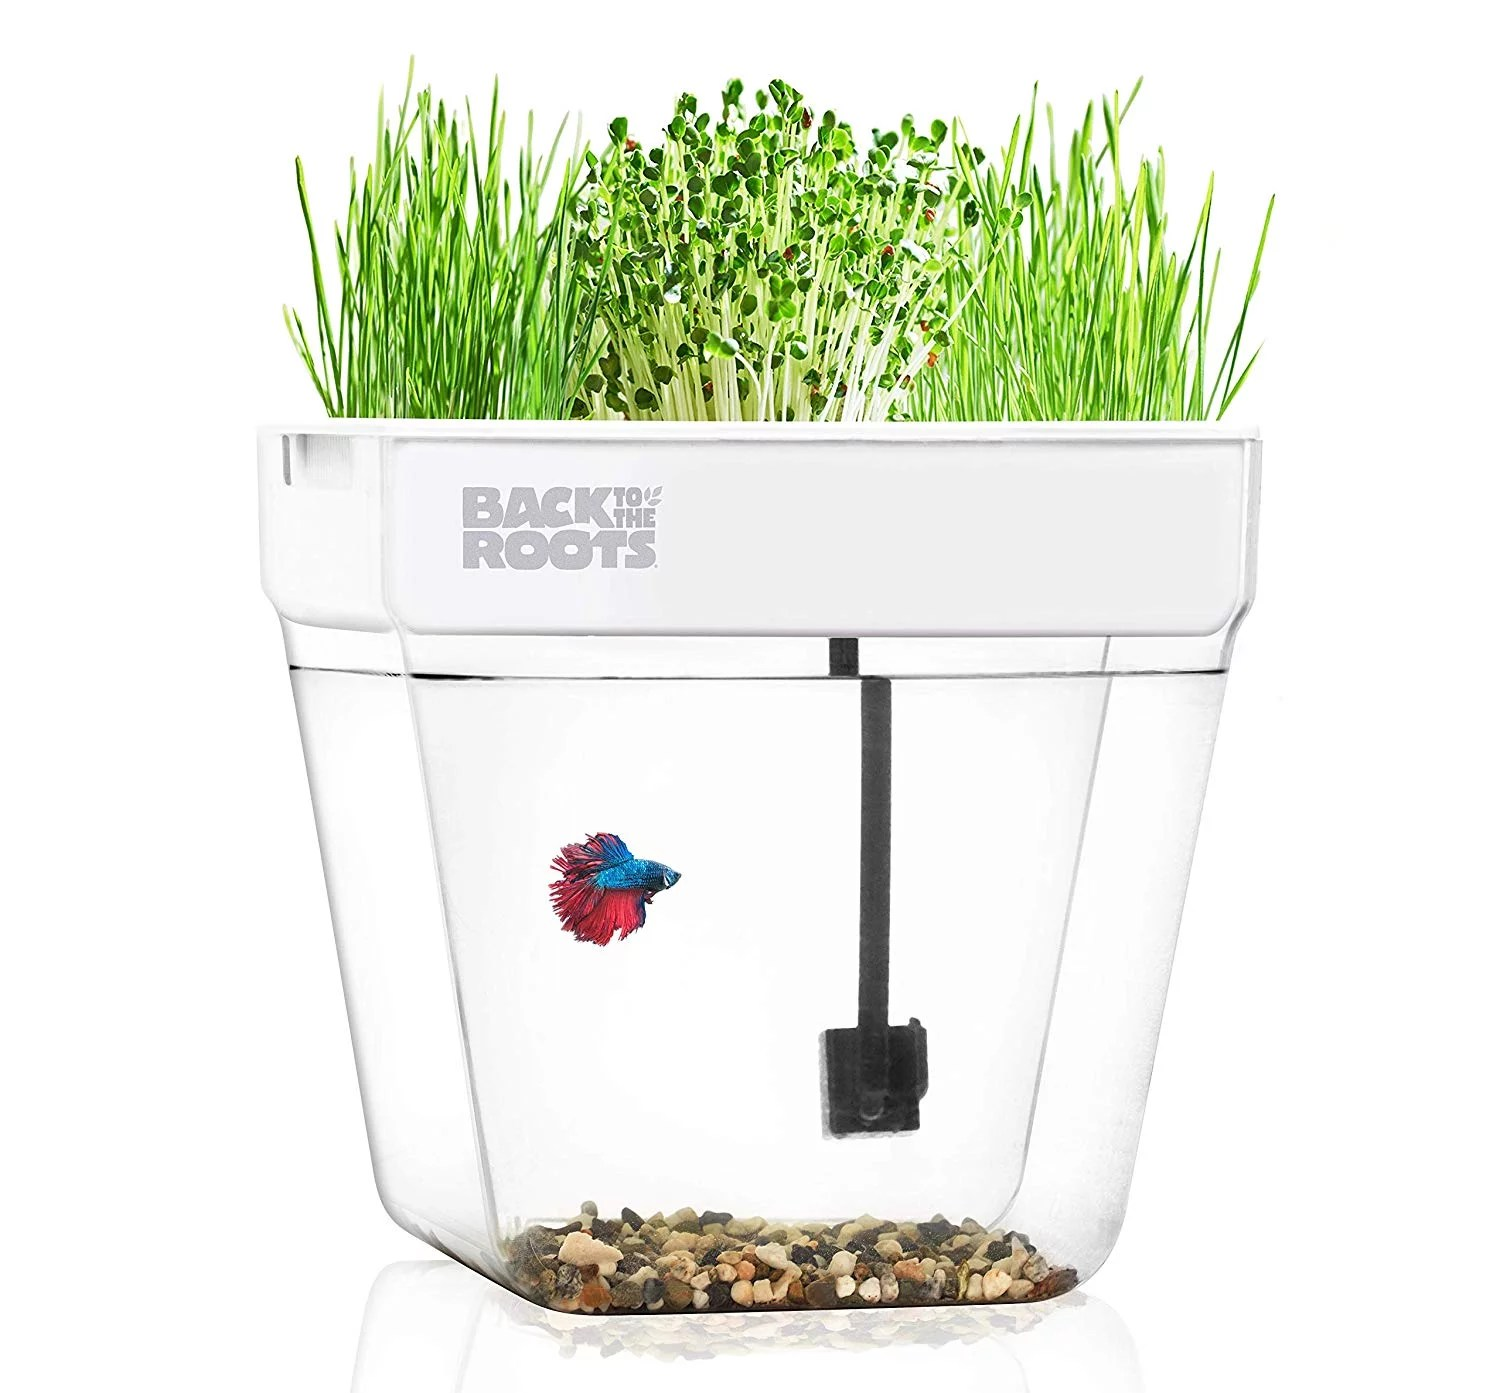 Back To The Roots Water Garden Aquarium Top Amazon Gifts 2020 Popsugar Smart Living Photo 21